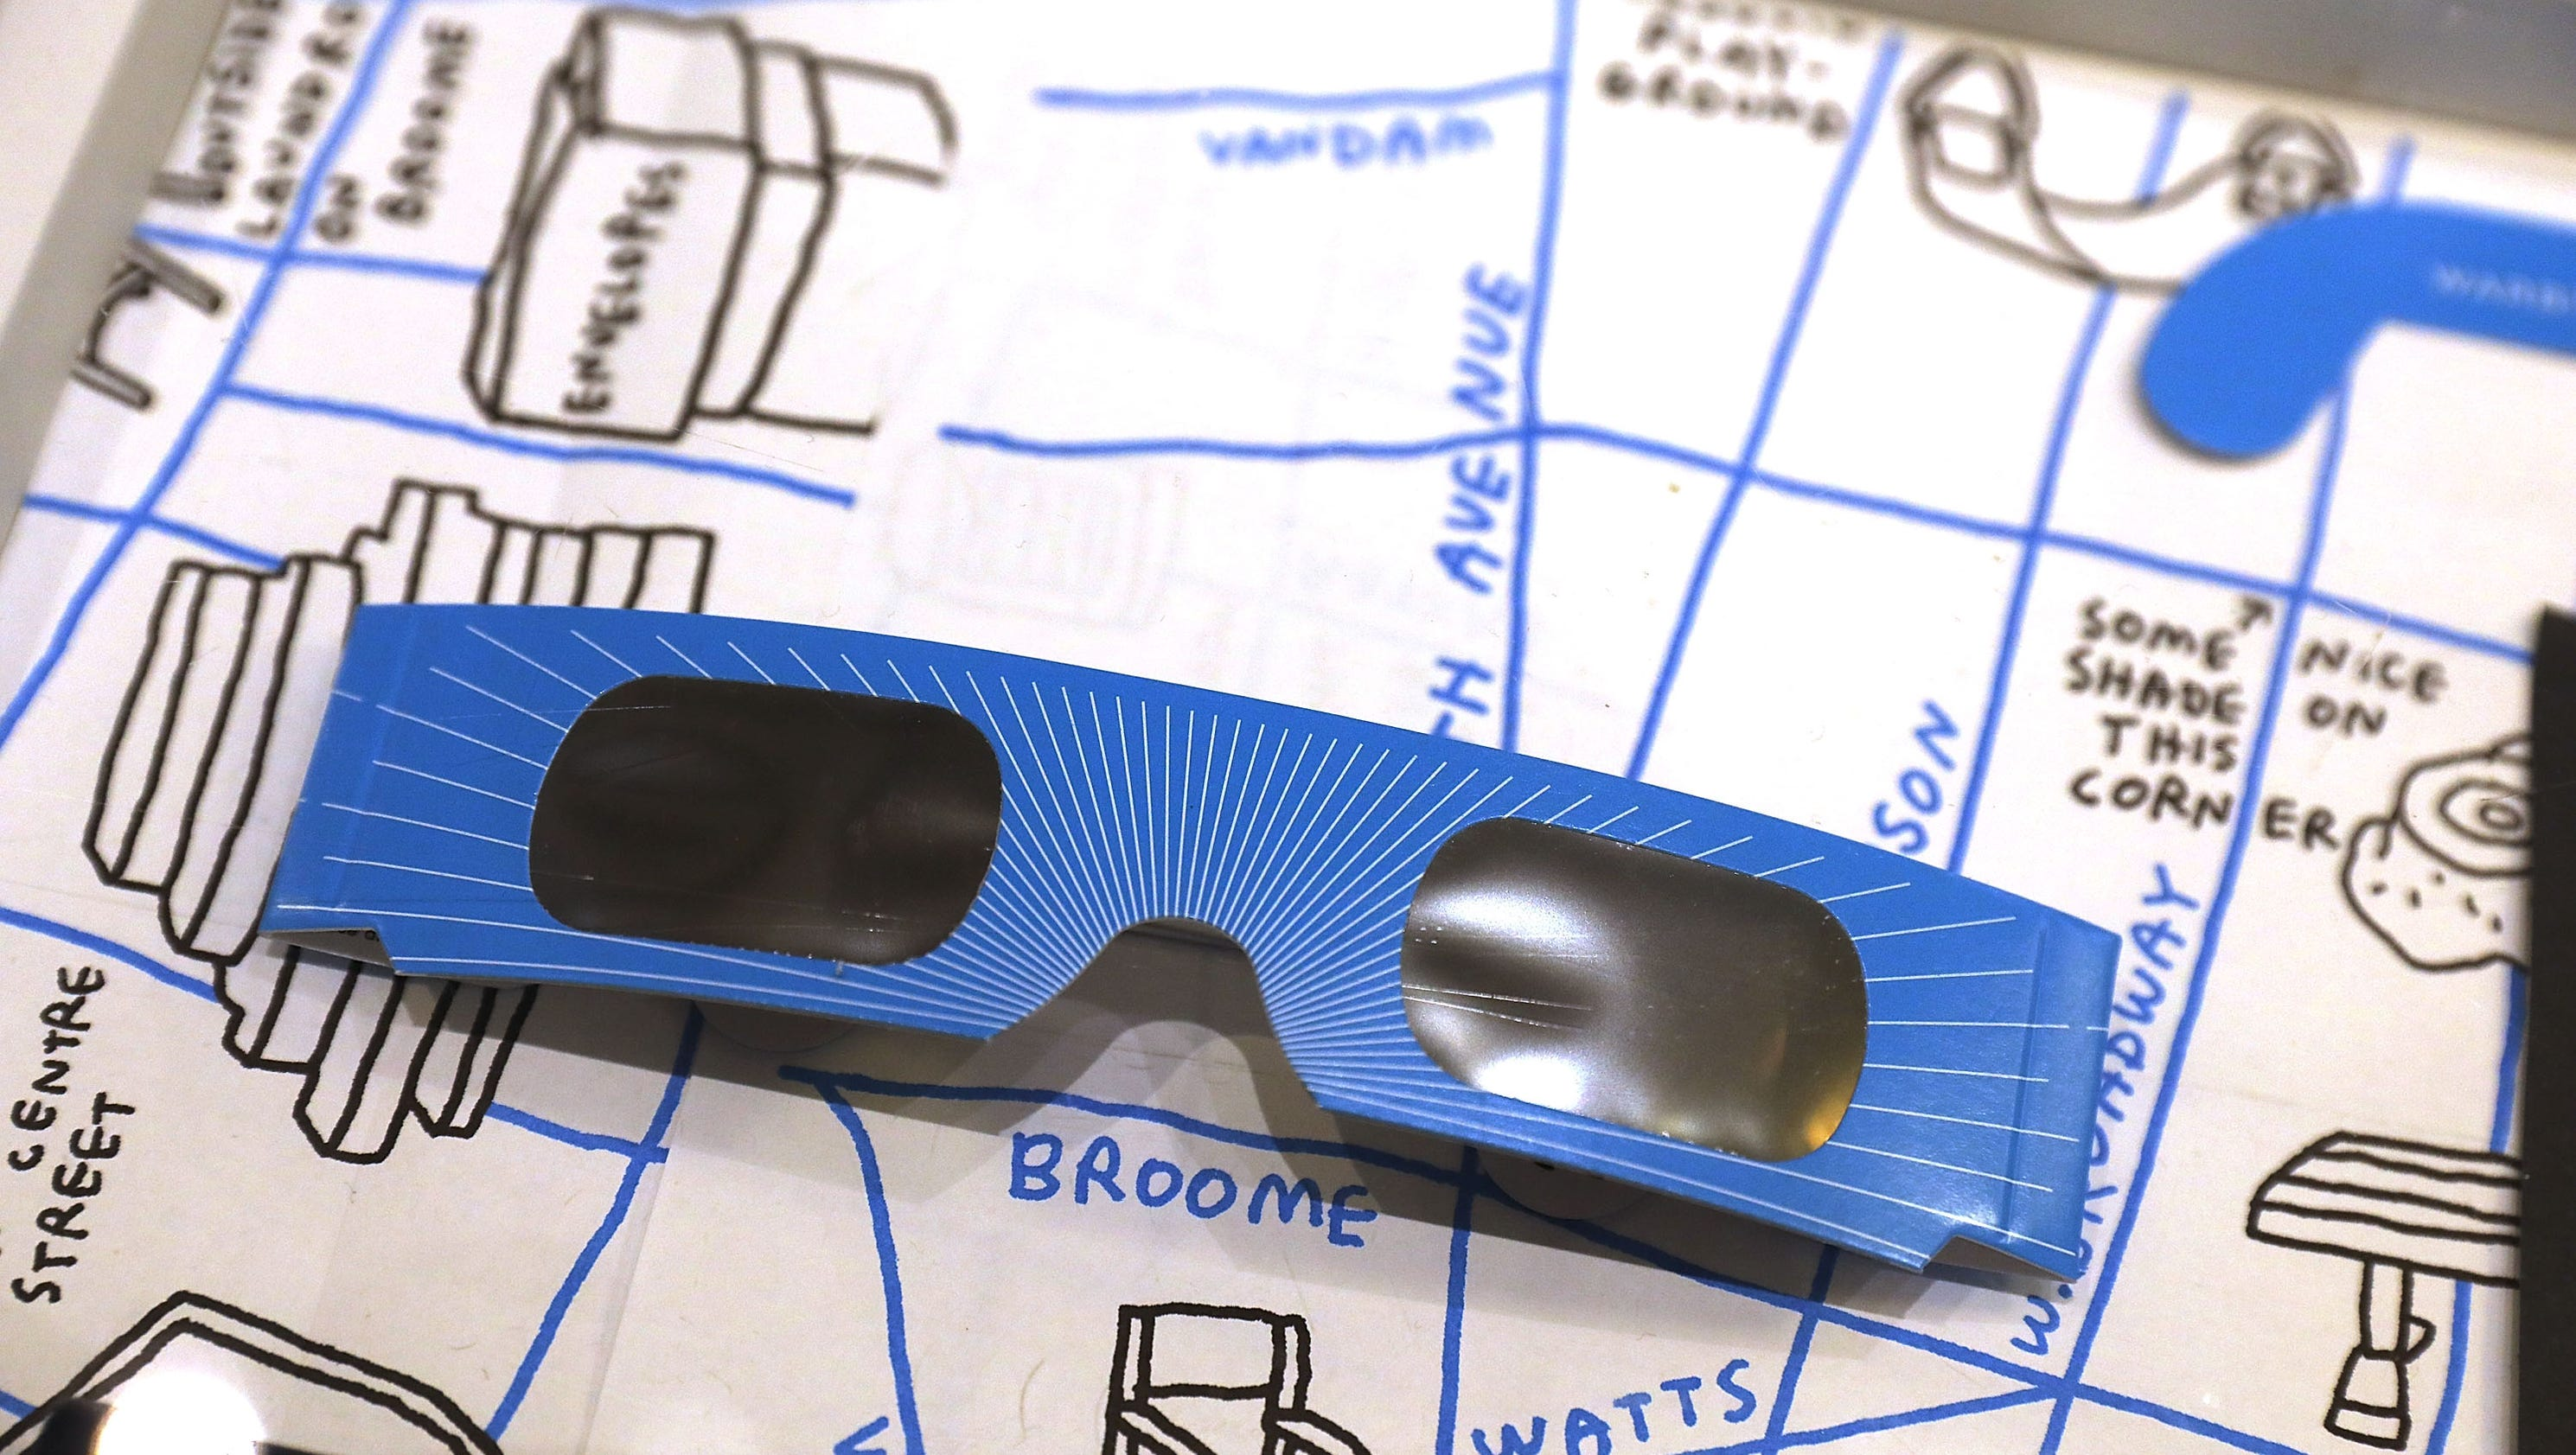 Solar eclipse glasses: Where to buy them, why you need them